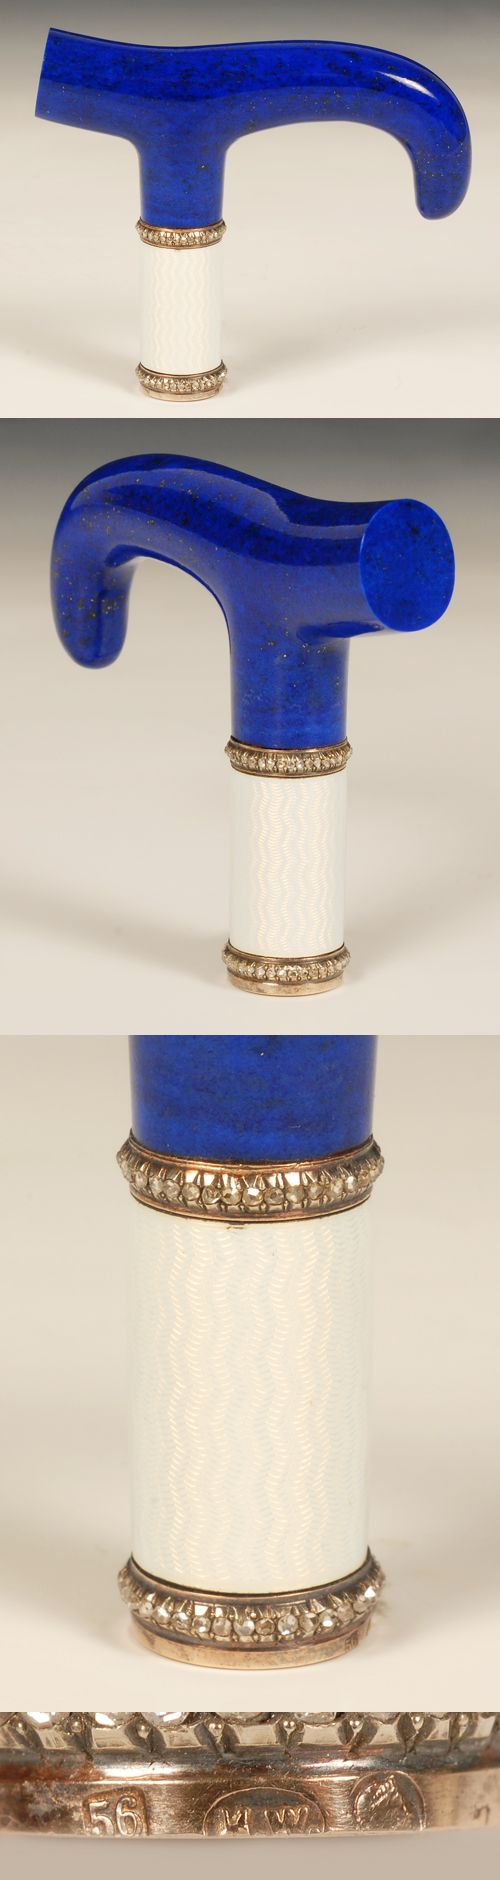 A Faberge jeweled gold mounted and guilloche enamel lapis lazuli parasol handle, workmaster Henrik Wigstrom, St. Petersburg, circa 1908-1917. Of tau form, the mounted collar enameled in translucent white over wavy engine turned ground, between rose-cut diamond borders